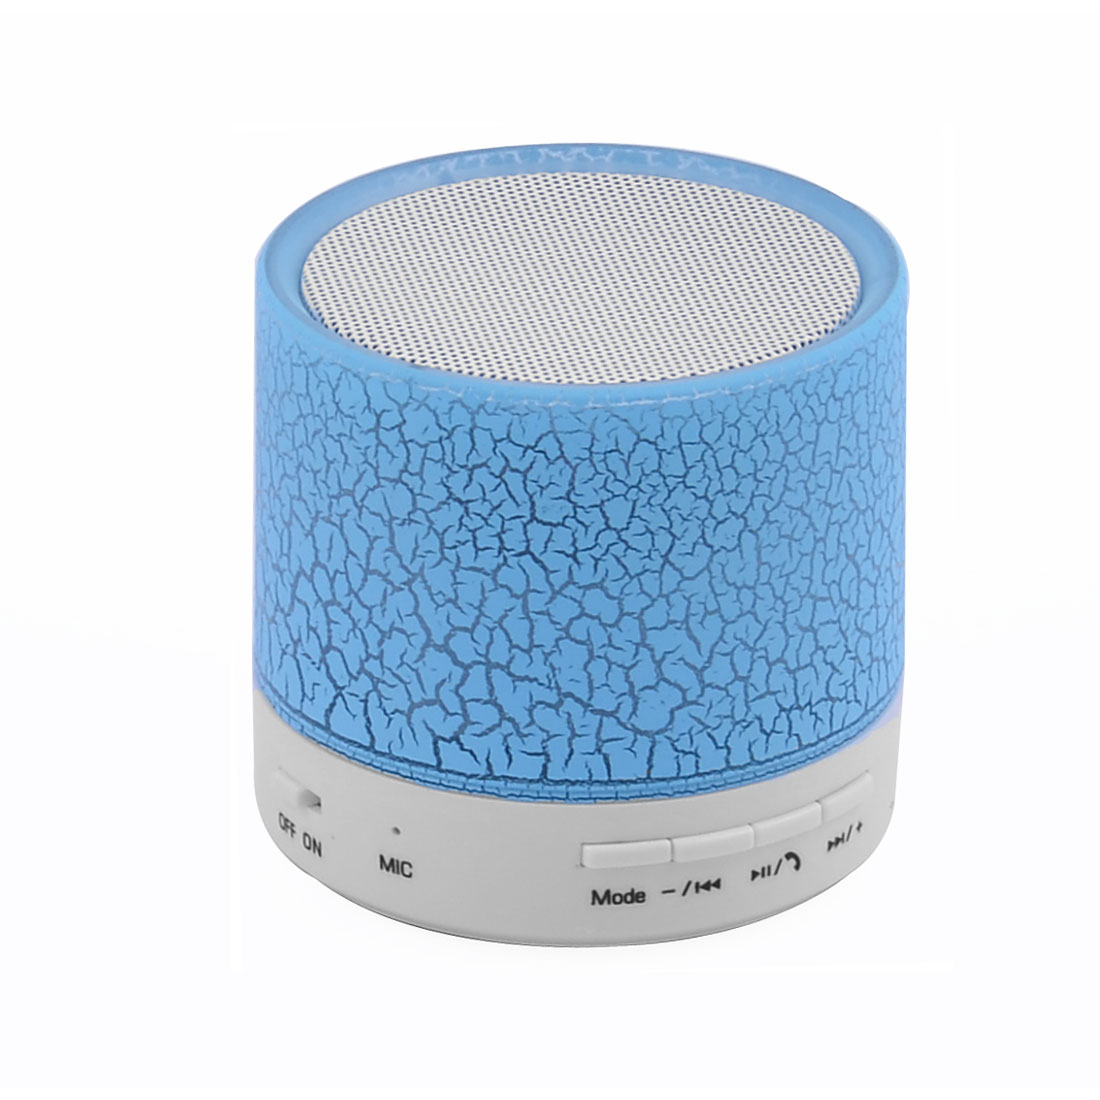 Unique Bargains Laptop    Support Micro SD Card Stereo Speaker Blue